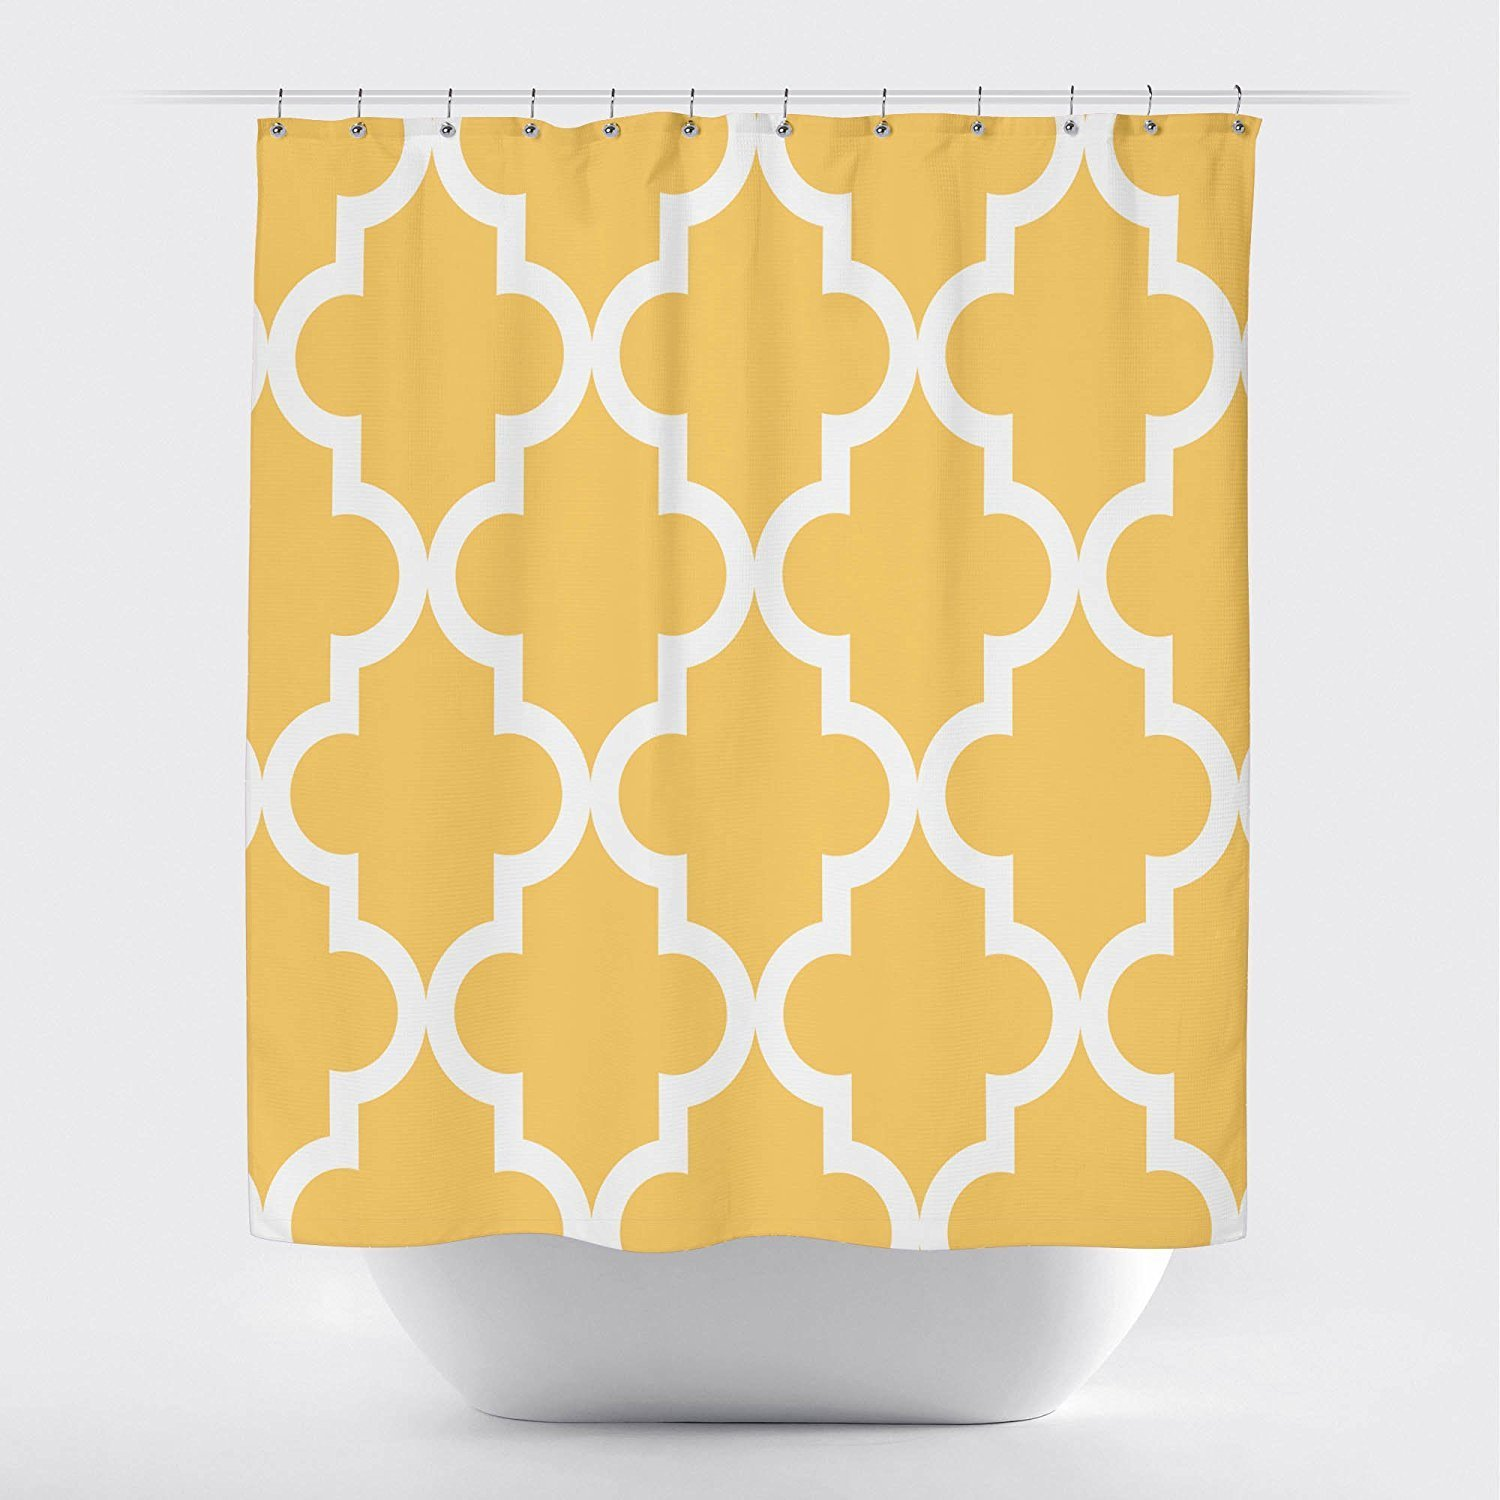 Us 16 01 11 Off Memory Home Scalloped Durable Fabric Shower Curtain Large White On Golden Yellow Bathroom Waterproof Polyester Shower Curtains In